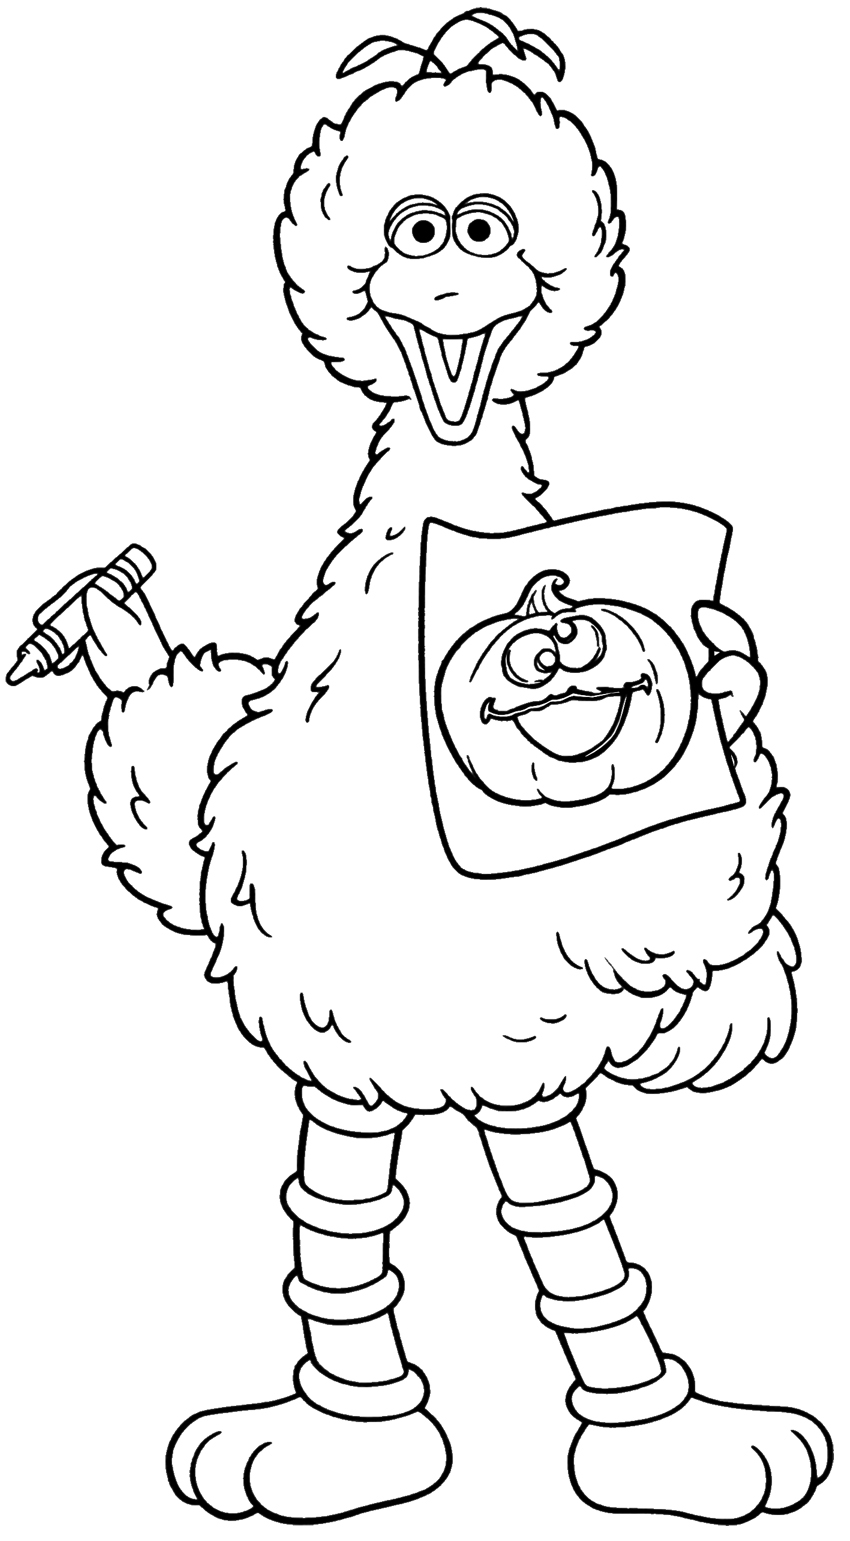 coloring pages of sesame street characters sesame street coloring pages kidsuki street coloring characters pages sesame of